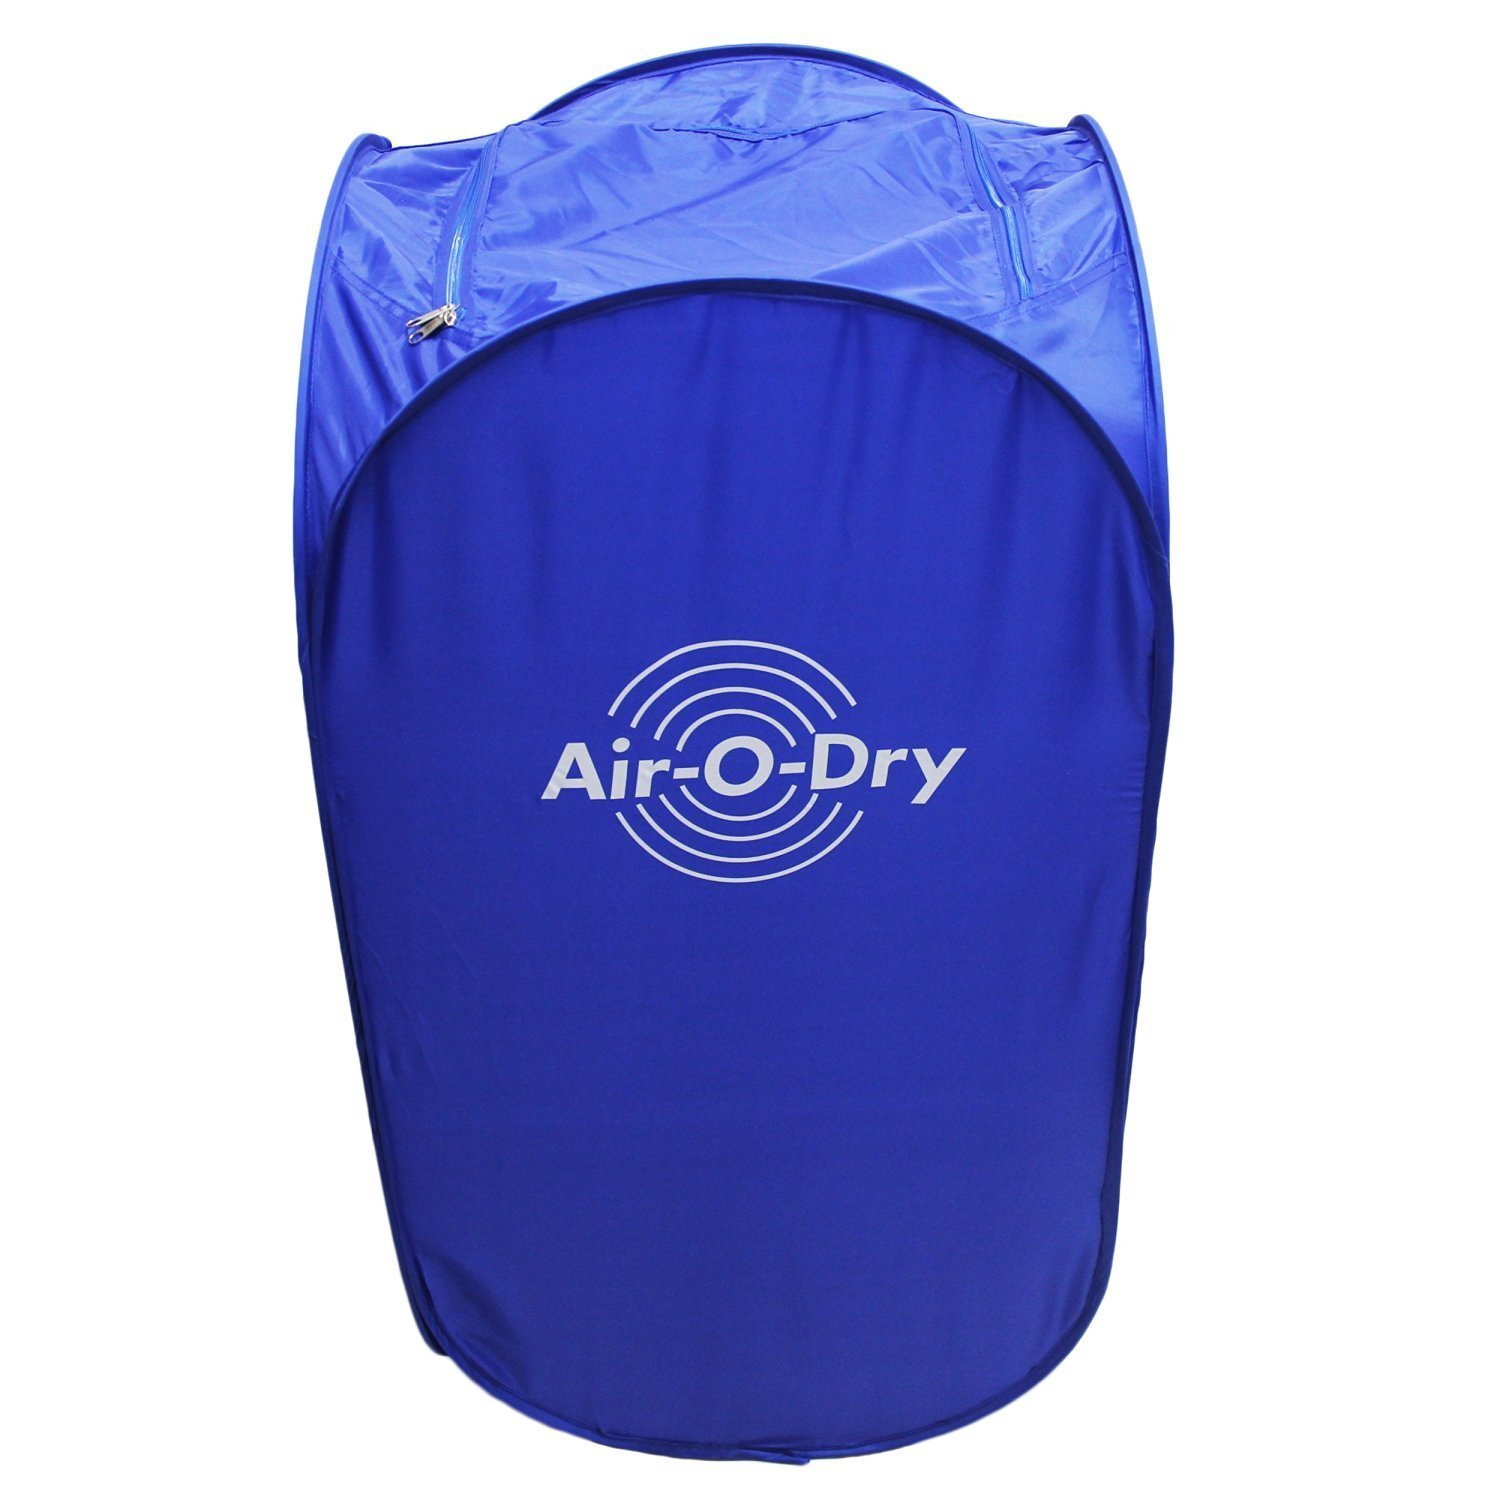 Higher Edition - Portable Electric Air Drying Clothes Dryer Clothing Dryer Heater - Easy for Long Clothes Weekweed Weekweed Dryer